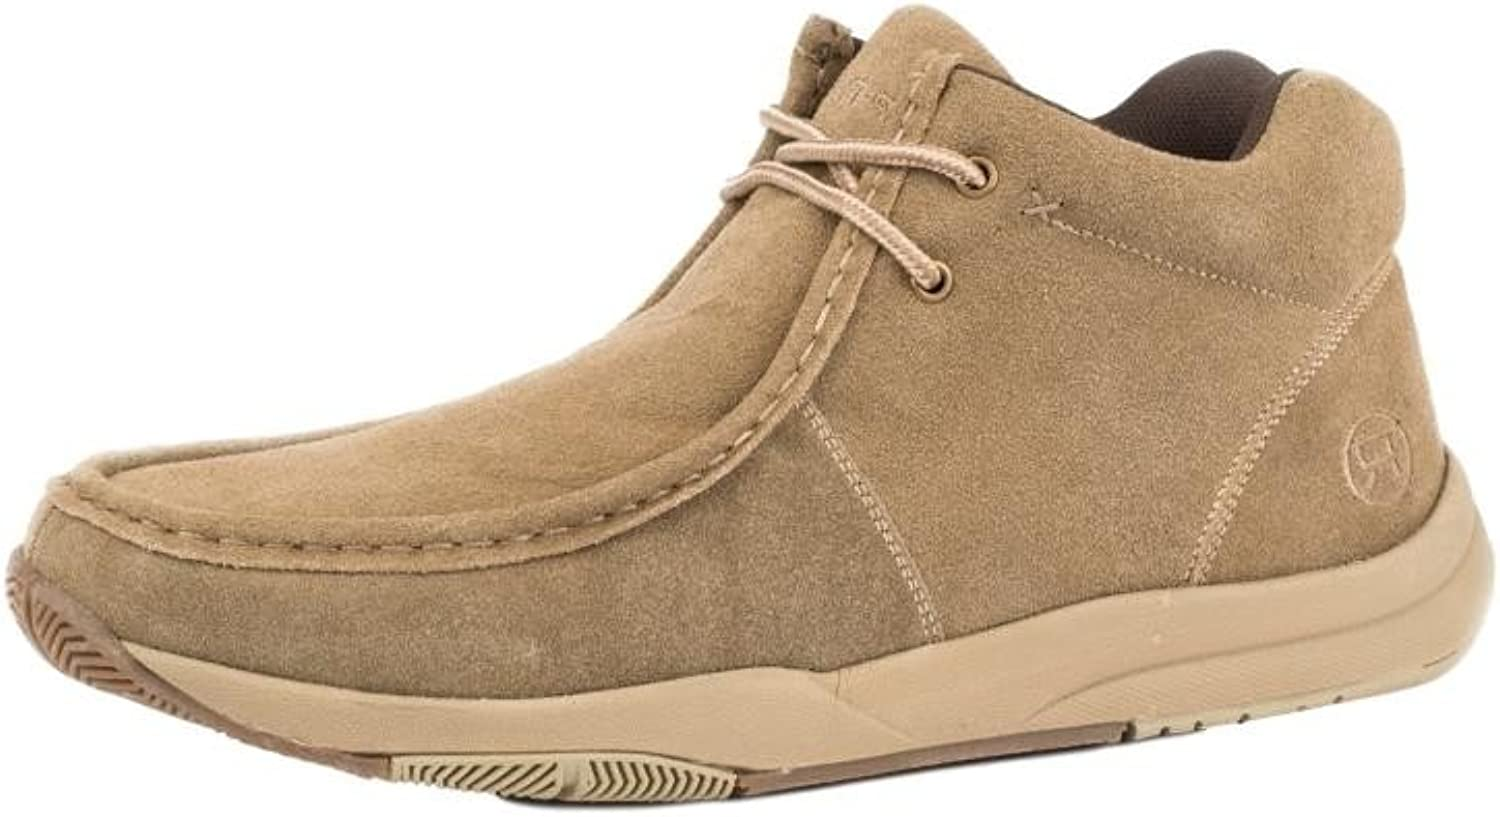 Roper Western shoes Mens Suede Leather Tan 09-020-1662-0280 TA